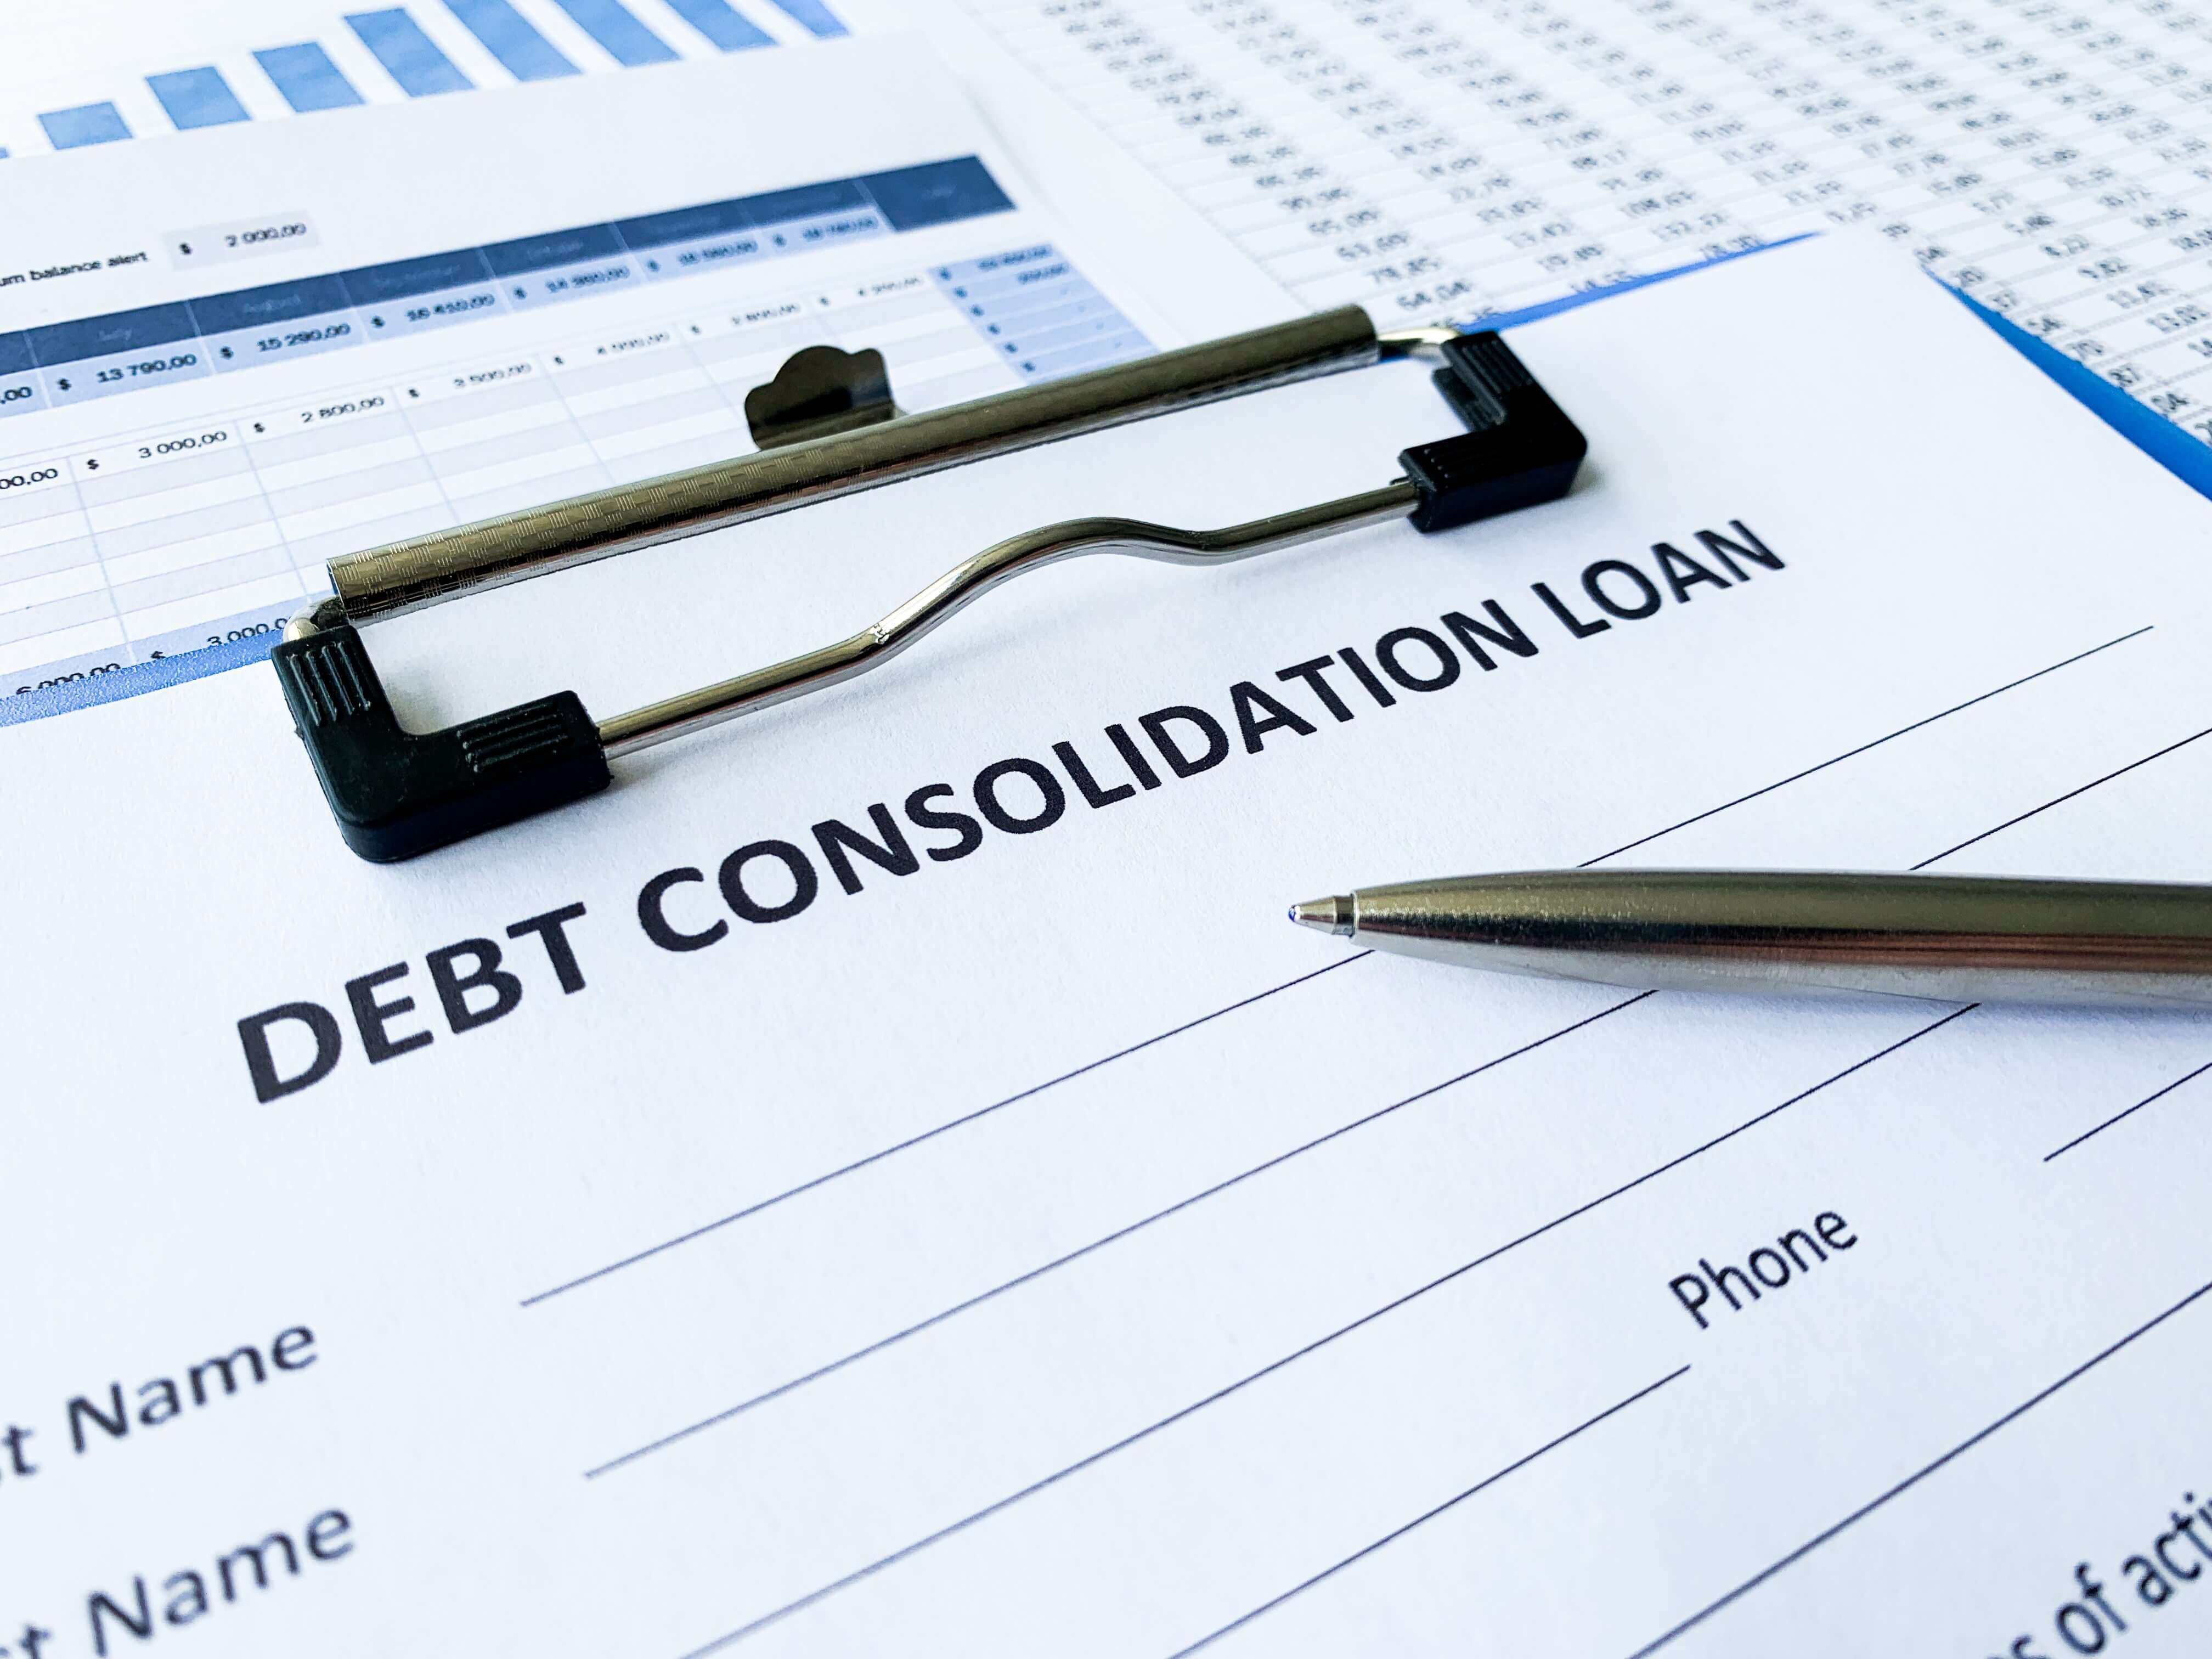 What Advantages Do You Gain with a Debt Consolidation Loan?